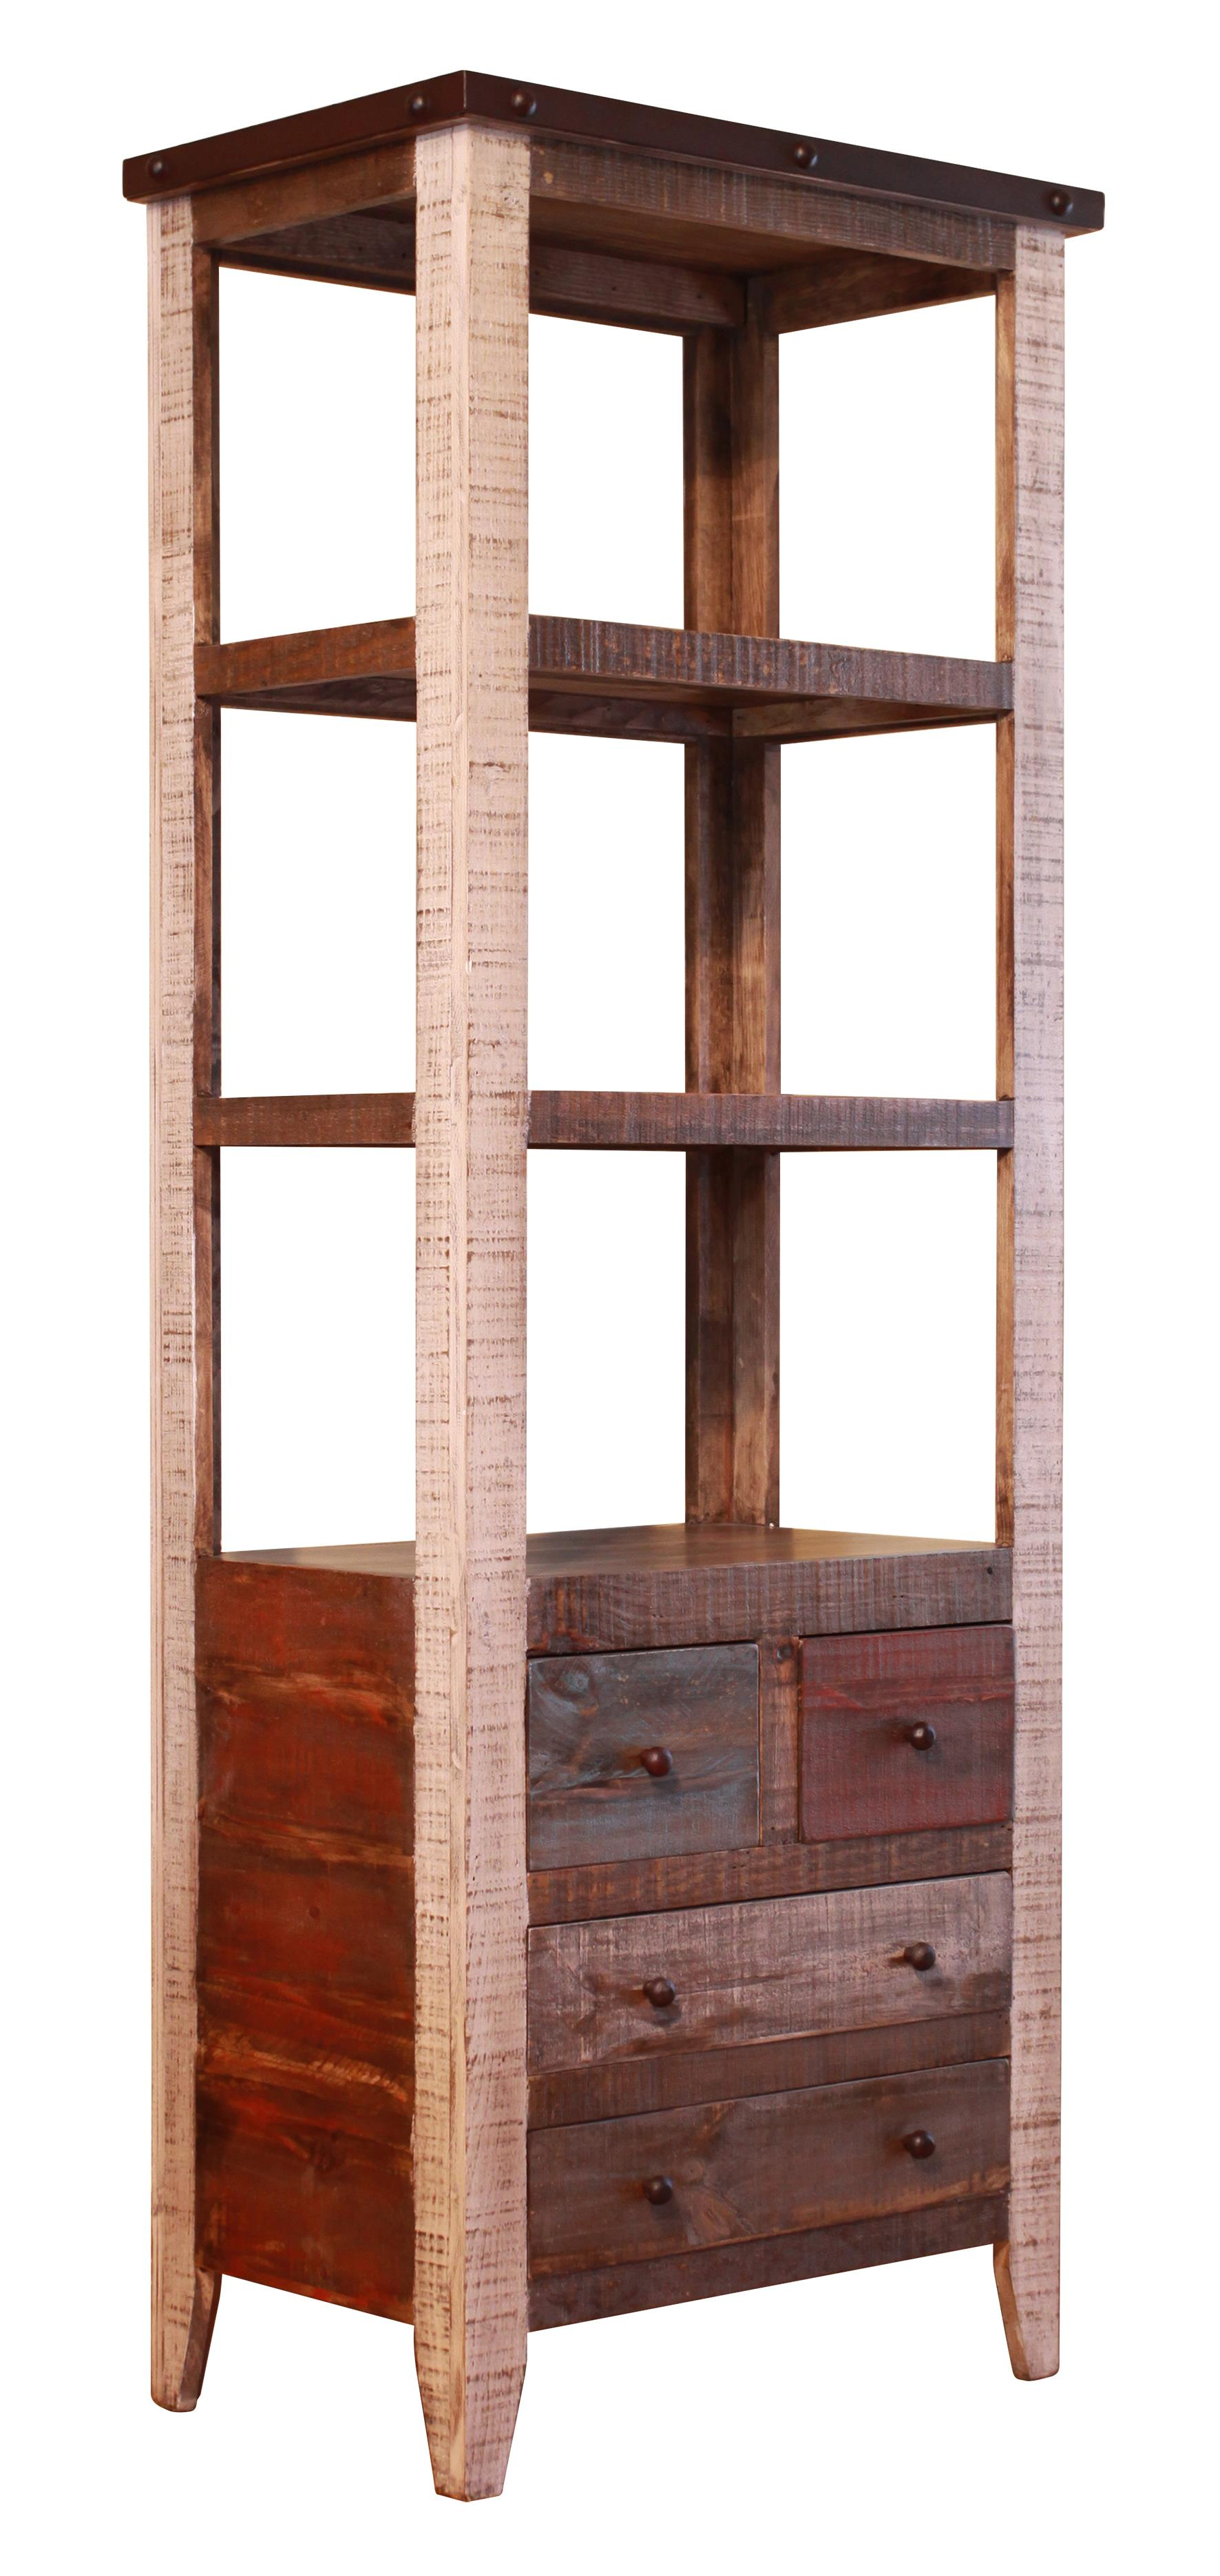 International Furniture Direct 900 Antique Pier with 4 Drawer and 3 Shelves - Item Number: IFD964PIER